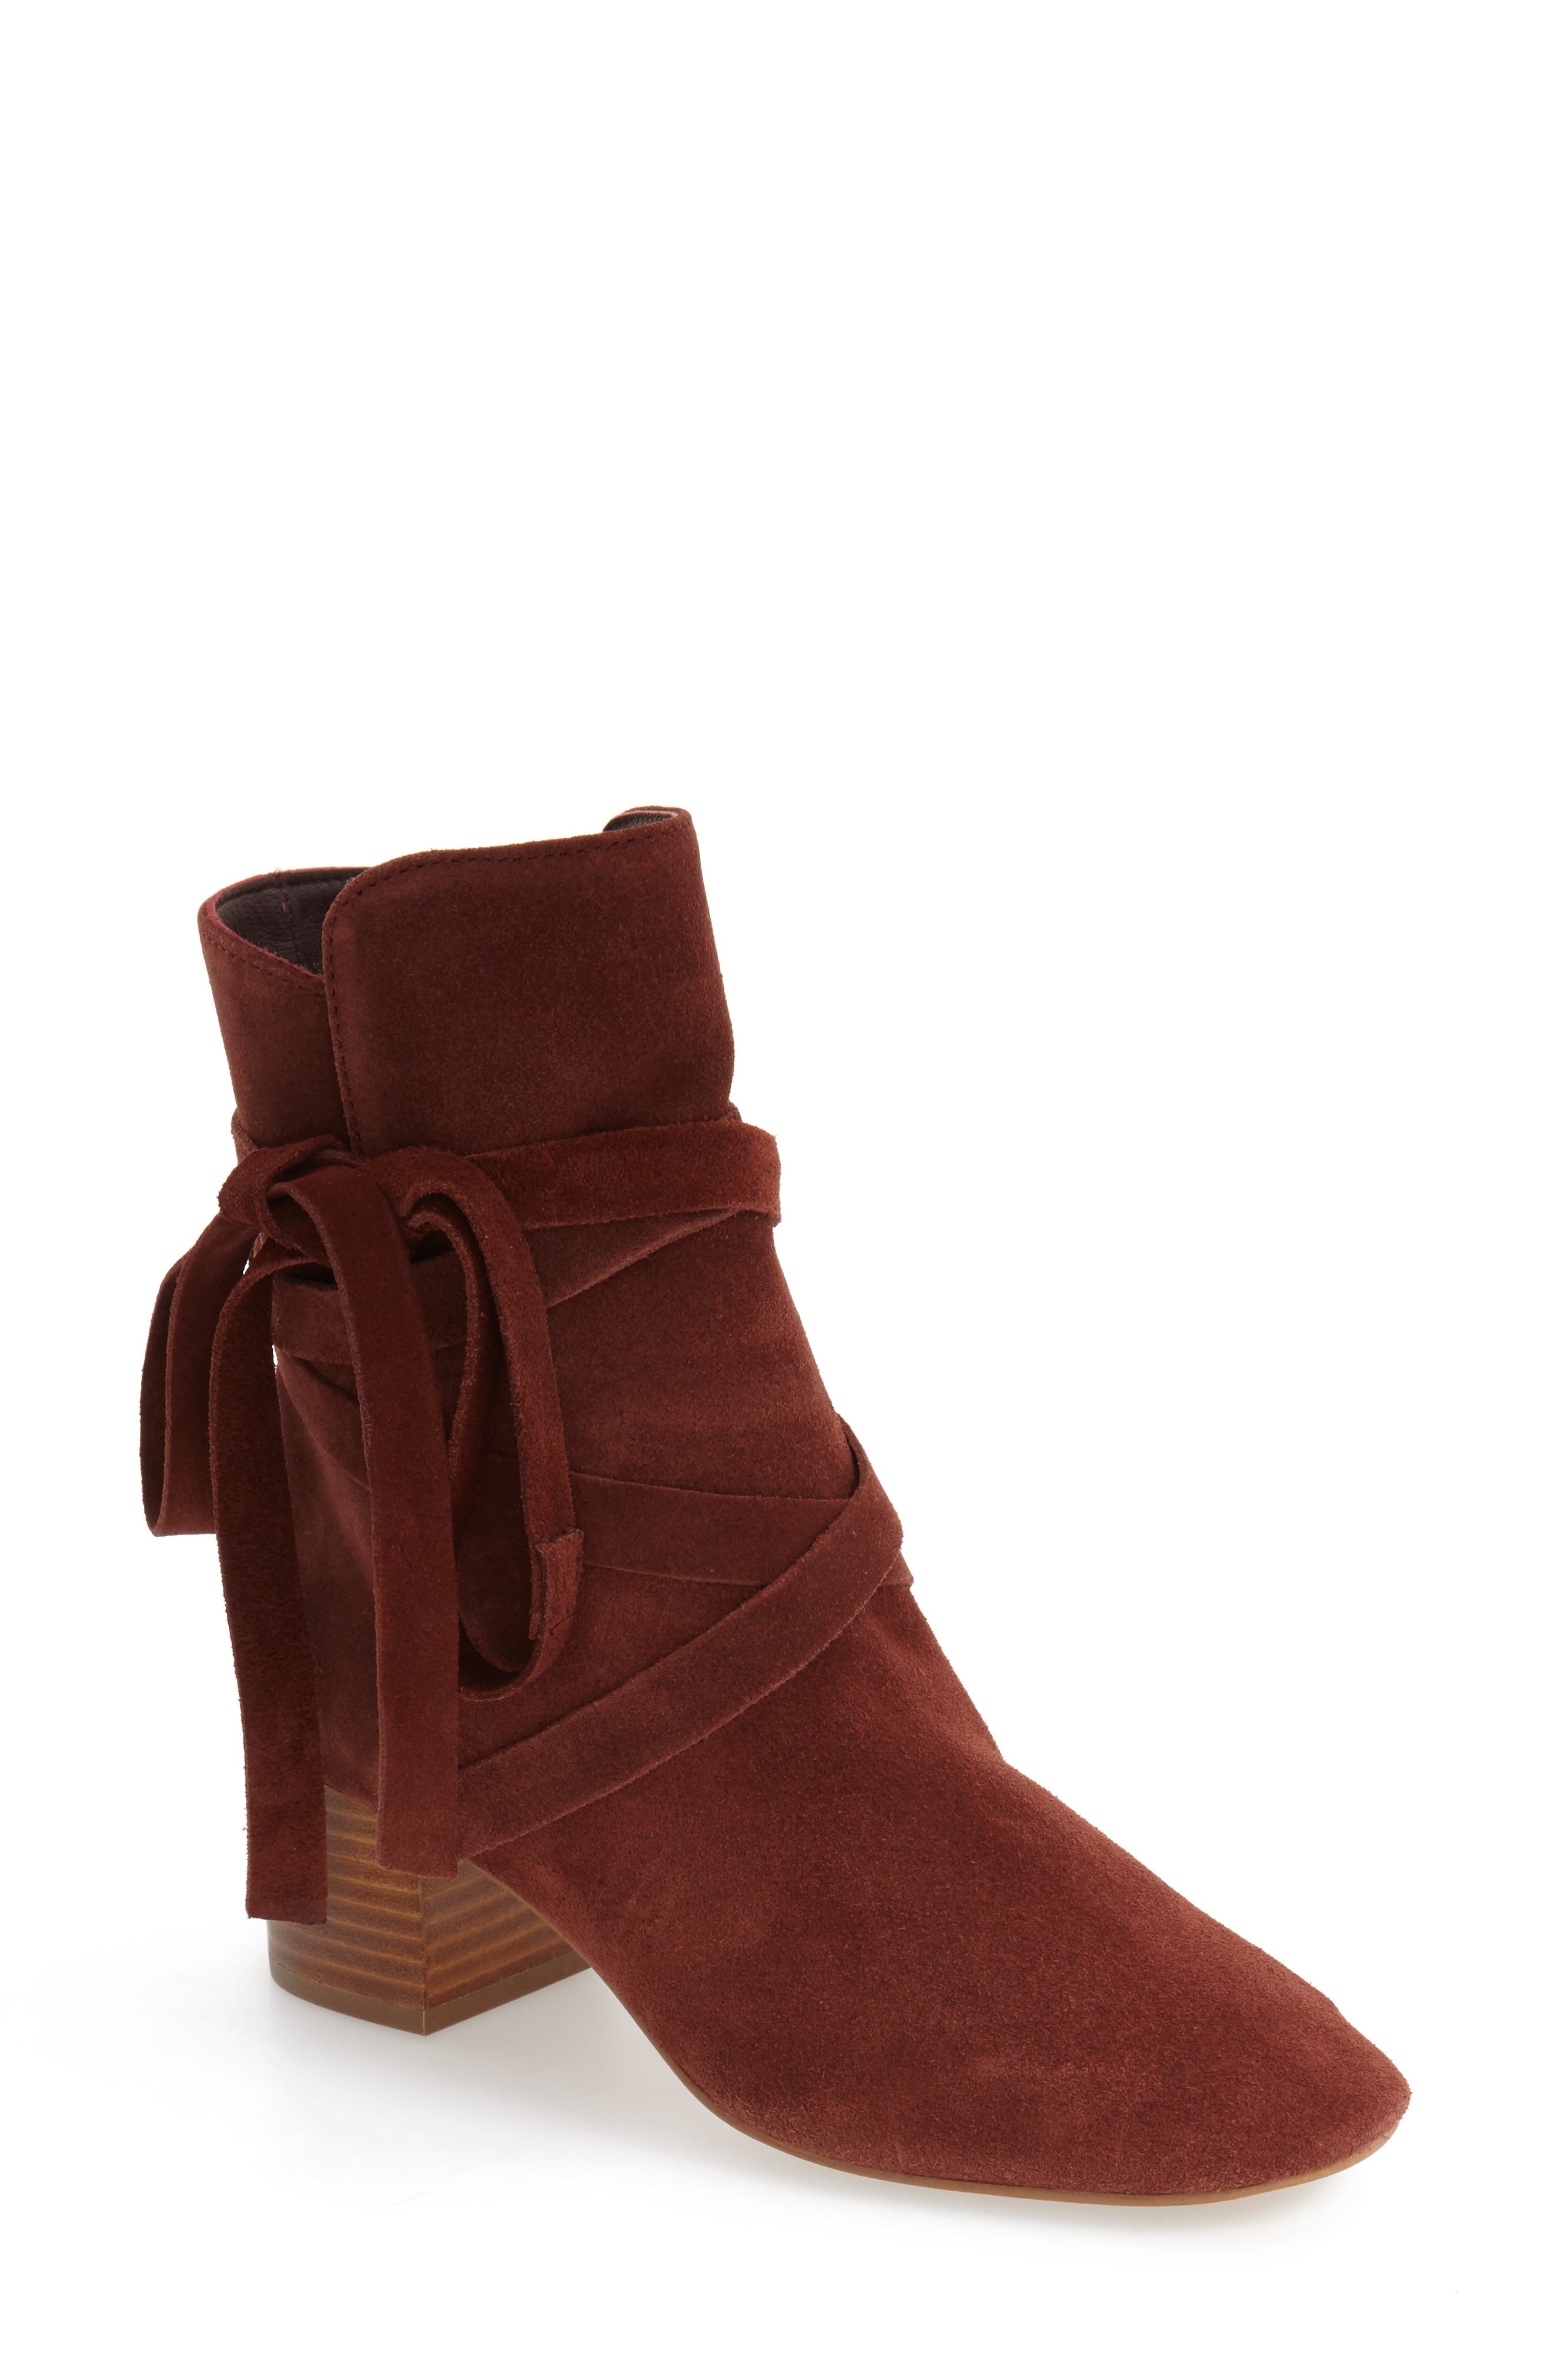 'Anabel' Lace-Up Boots,                             Alternate thumbnail 4, color,                             220